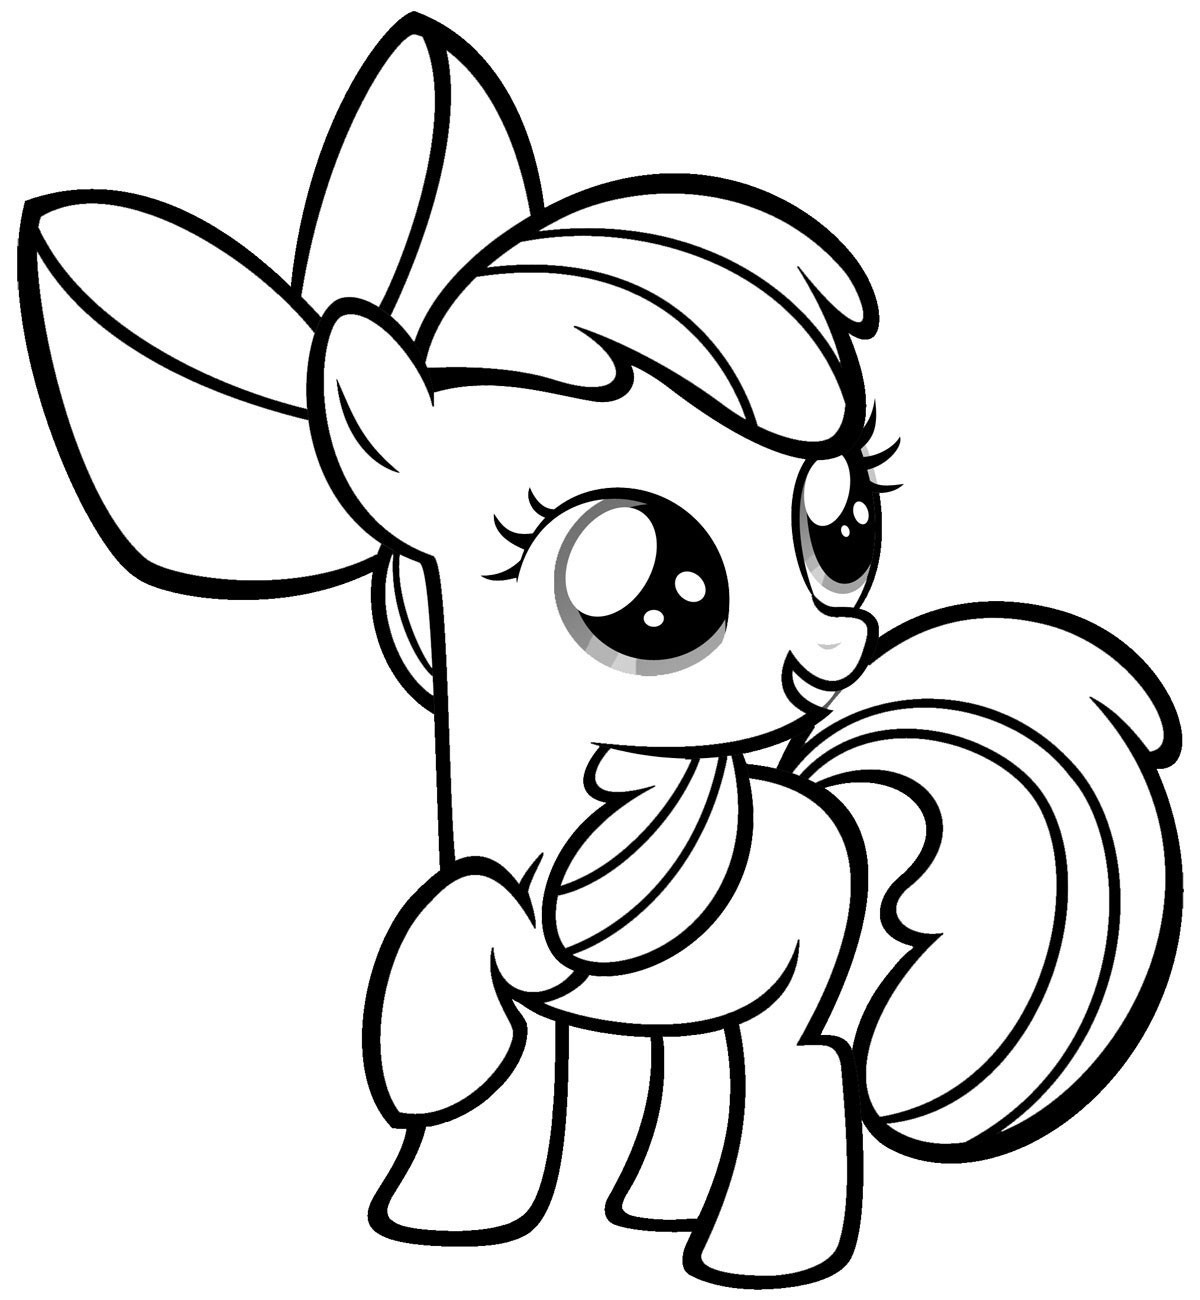 Color Pages Online My Little Pony Coloring Pages Online Free - Free Printable Coloring Pages Of My Little Pony